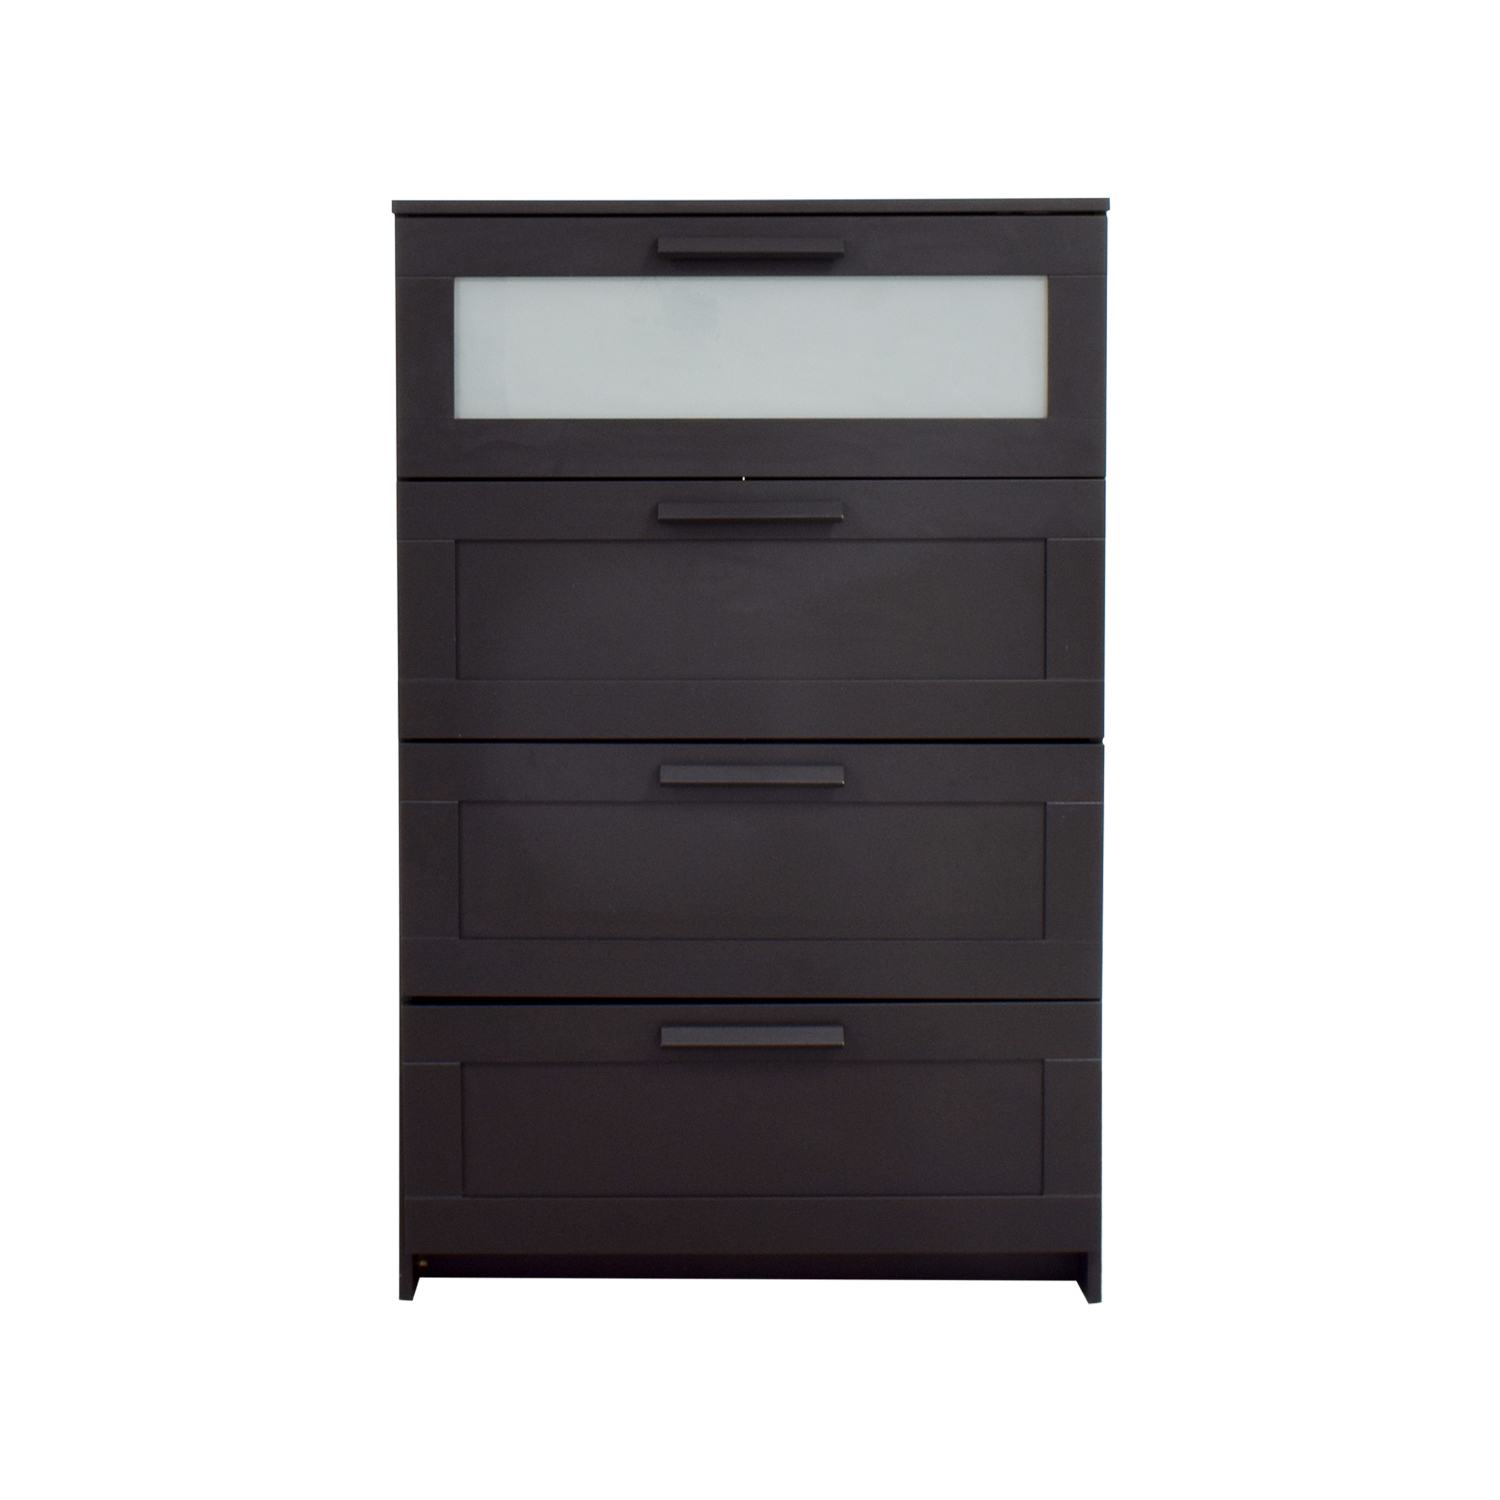 IKEA IKEA Brimnes Four-Drawer Dresser price